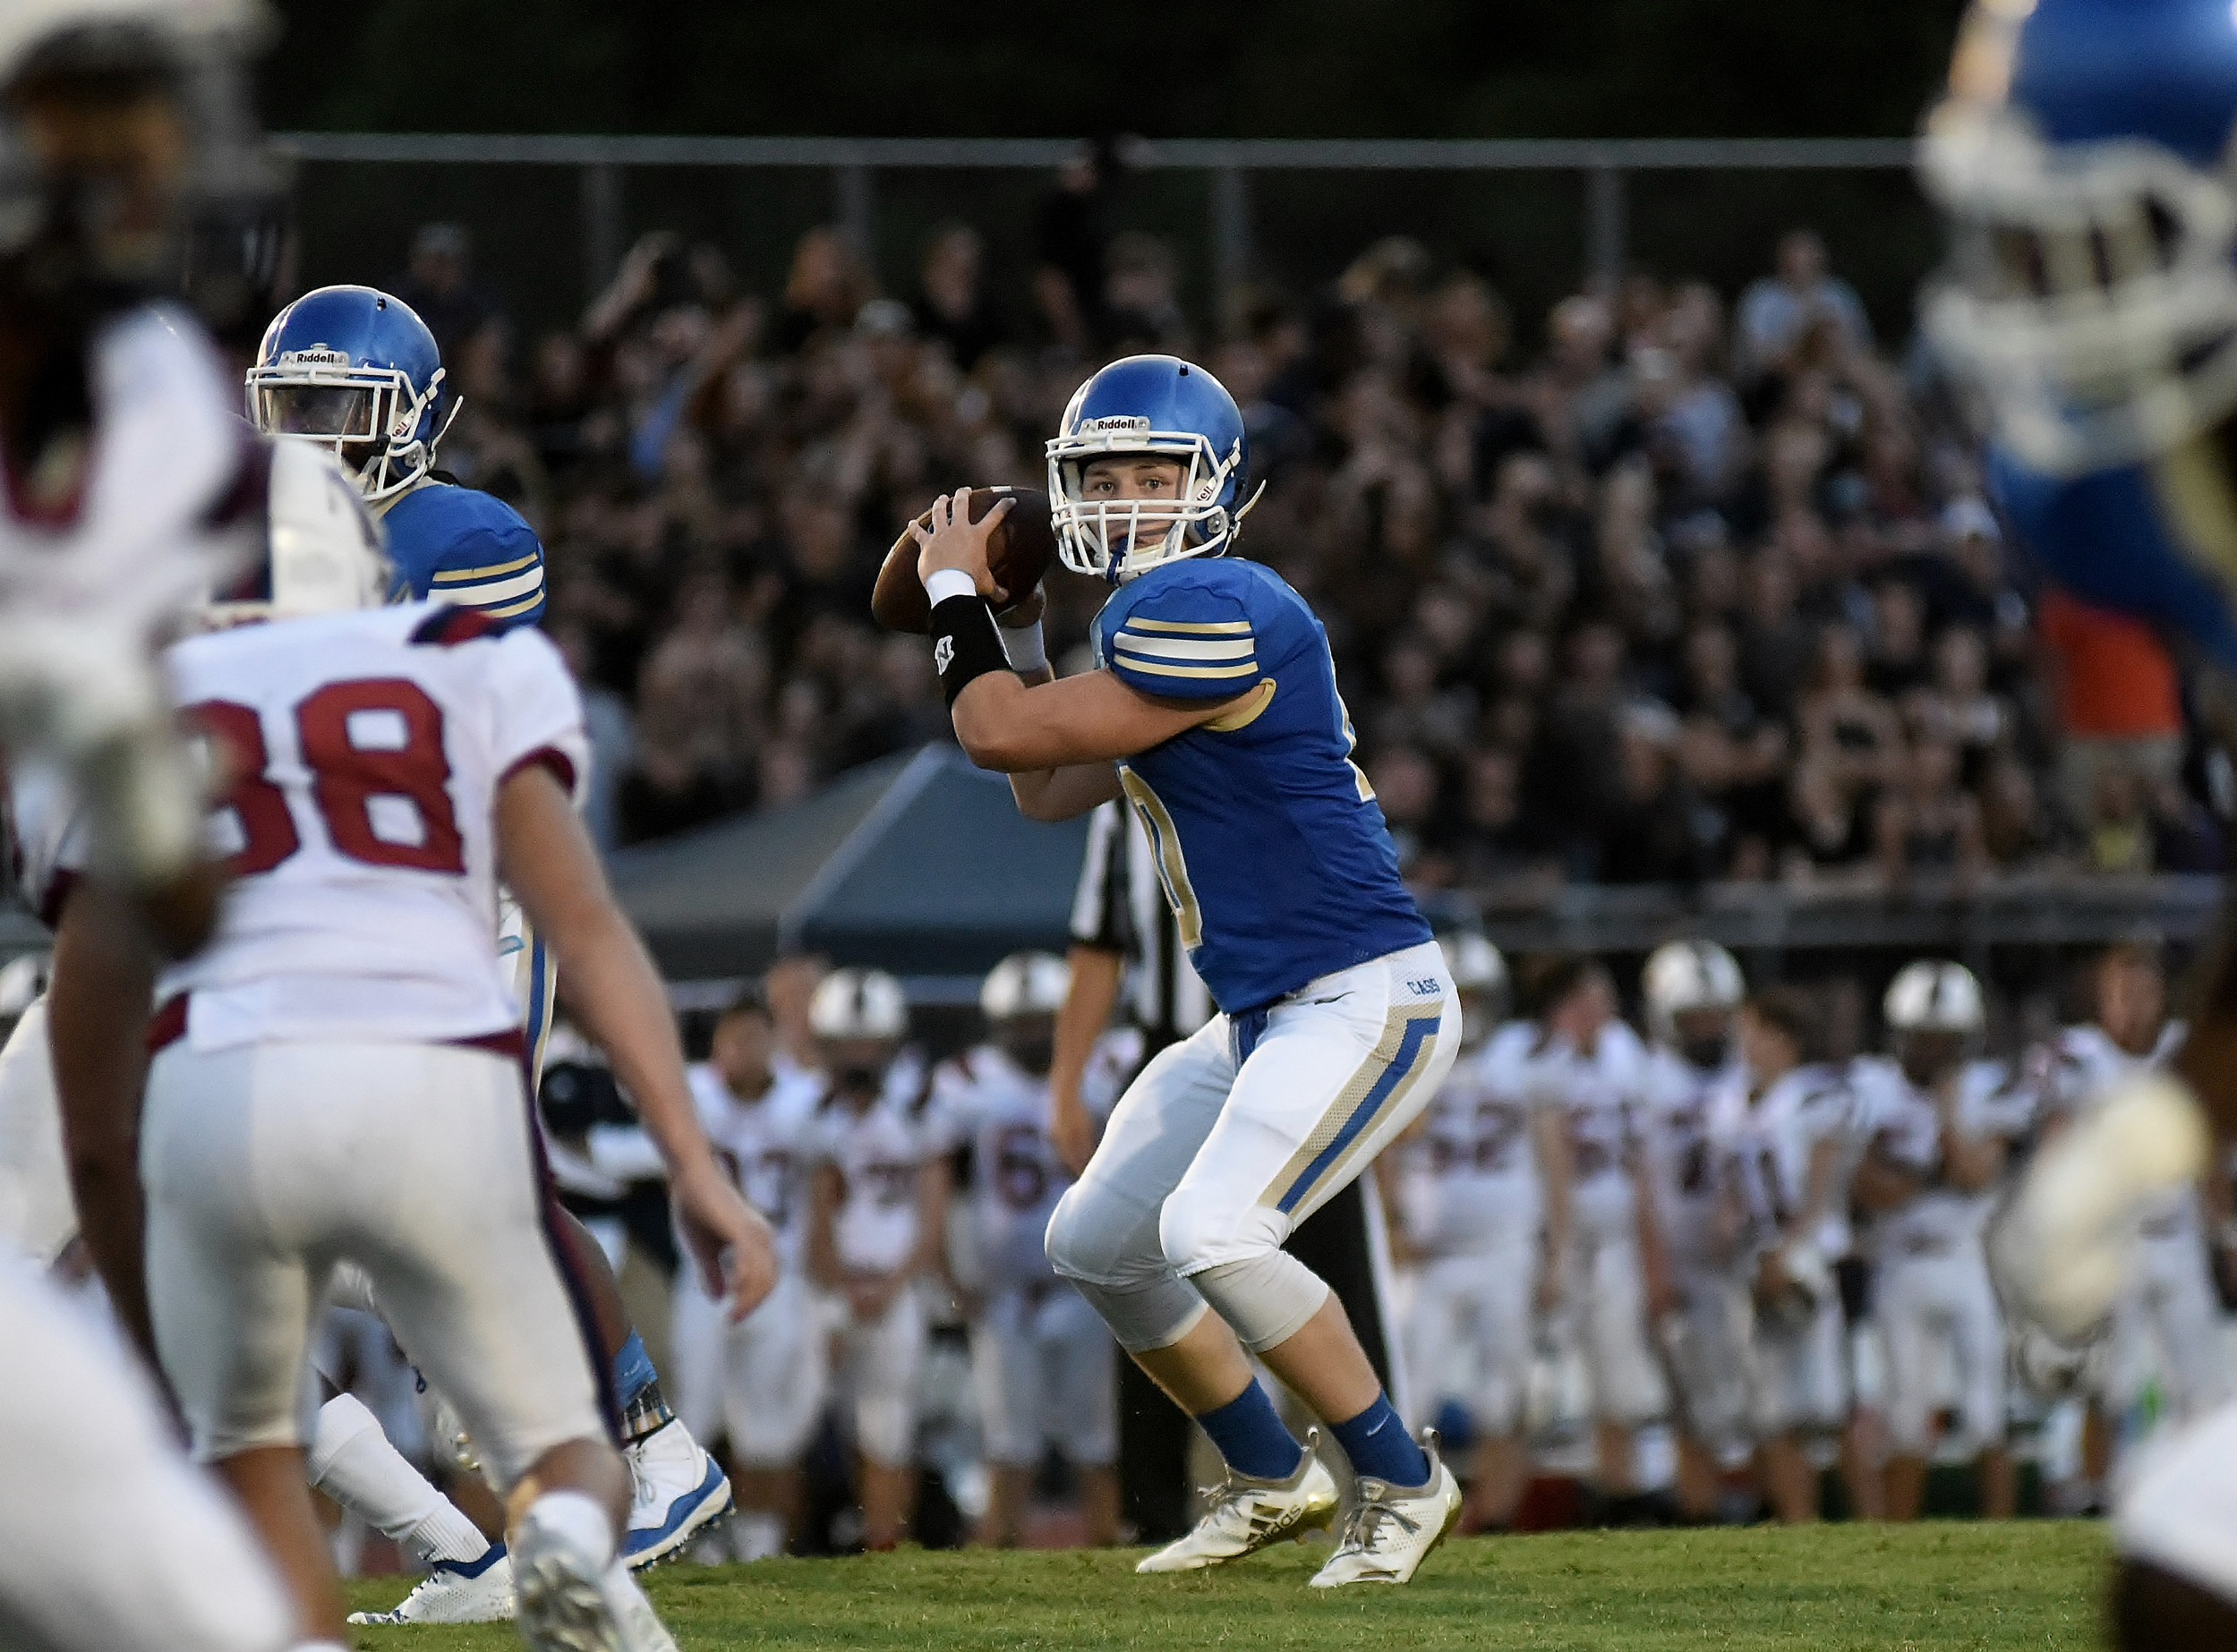 Cass quarterback Rett Moore looks to pass the ball during Friday's game.